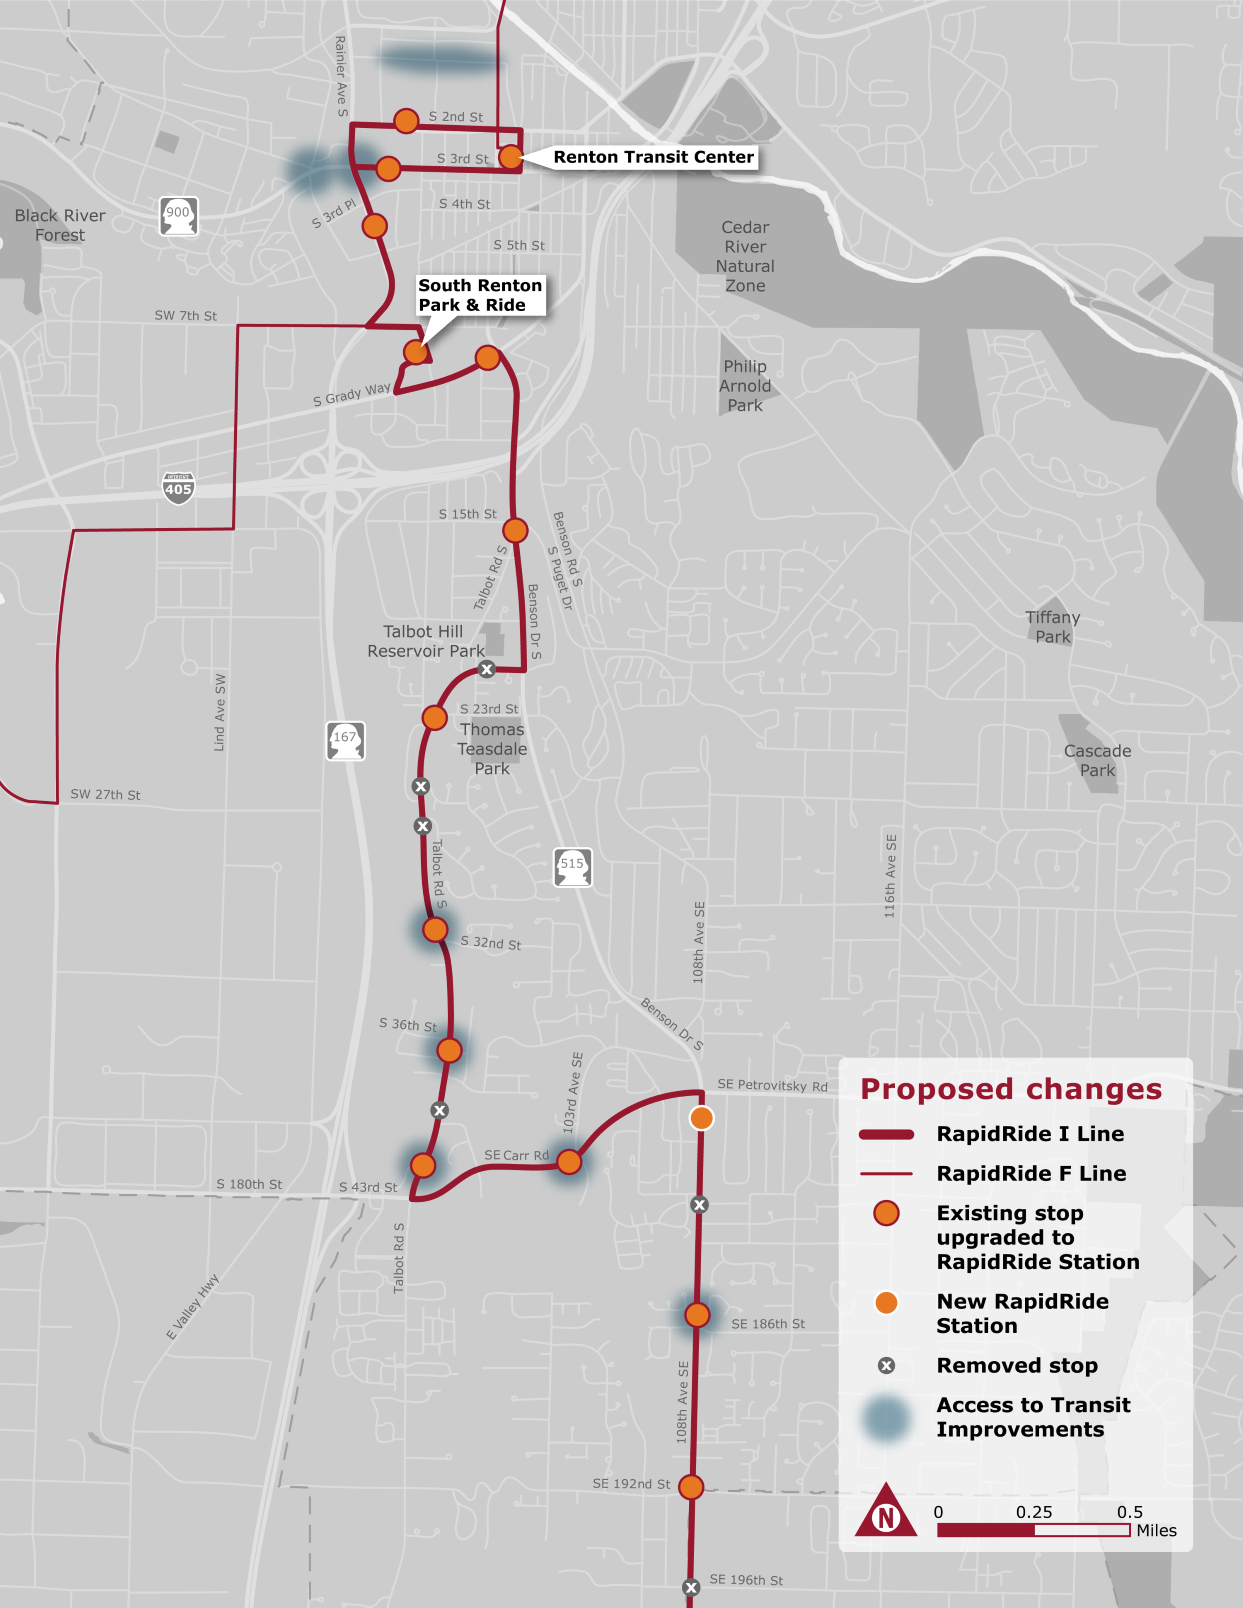 Map of proposed changes to RapidRide I Line, F Line, existing and new RapidRide stations, local bus service, and access to Transit Improvements